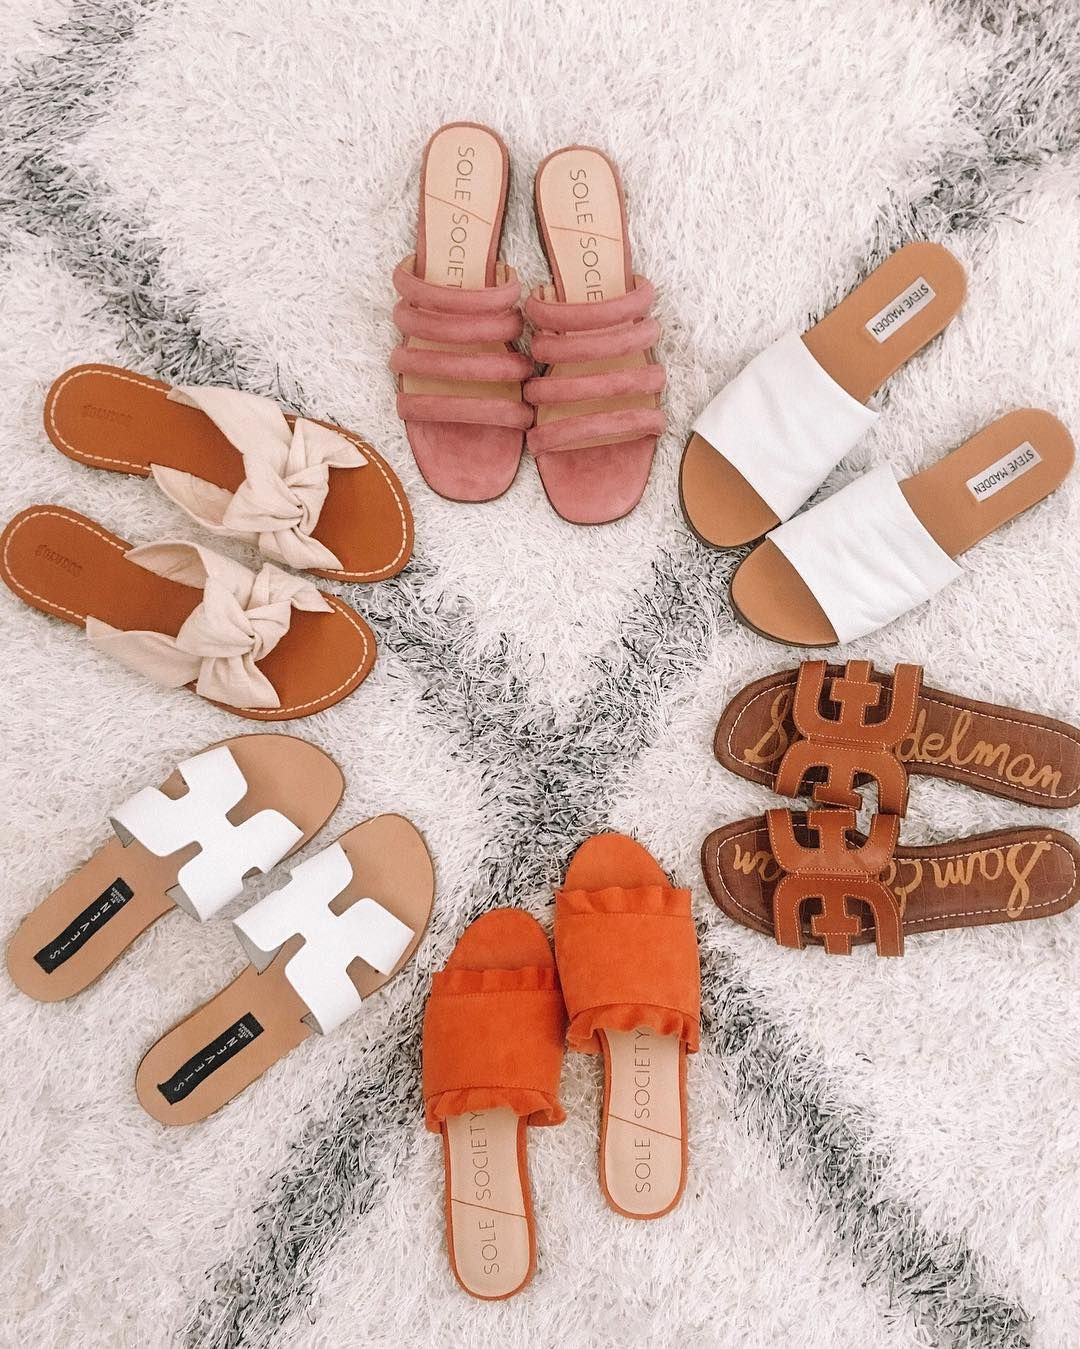 33 Awesome Sandals That're So Catchy & Stylish